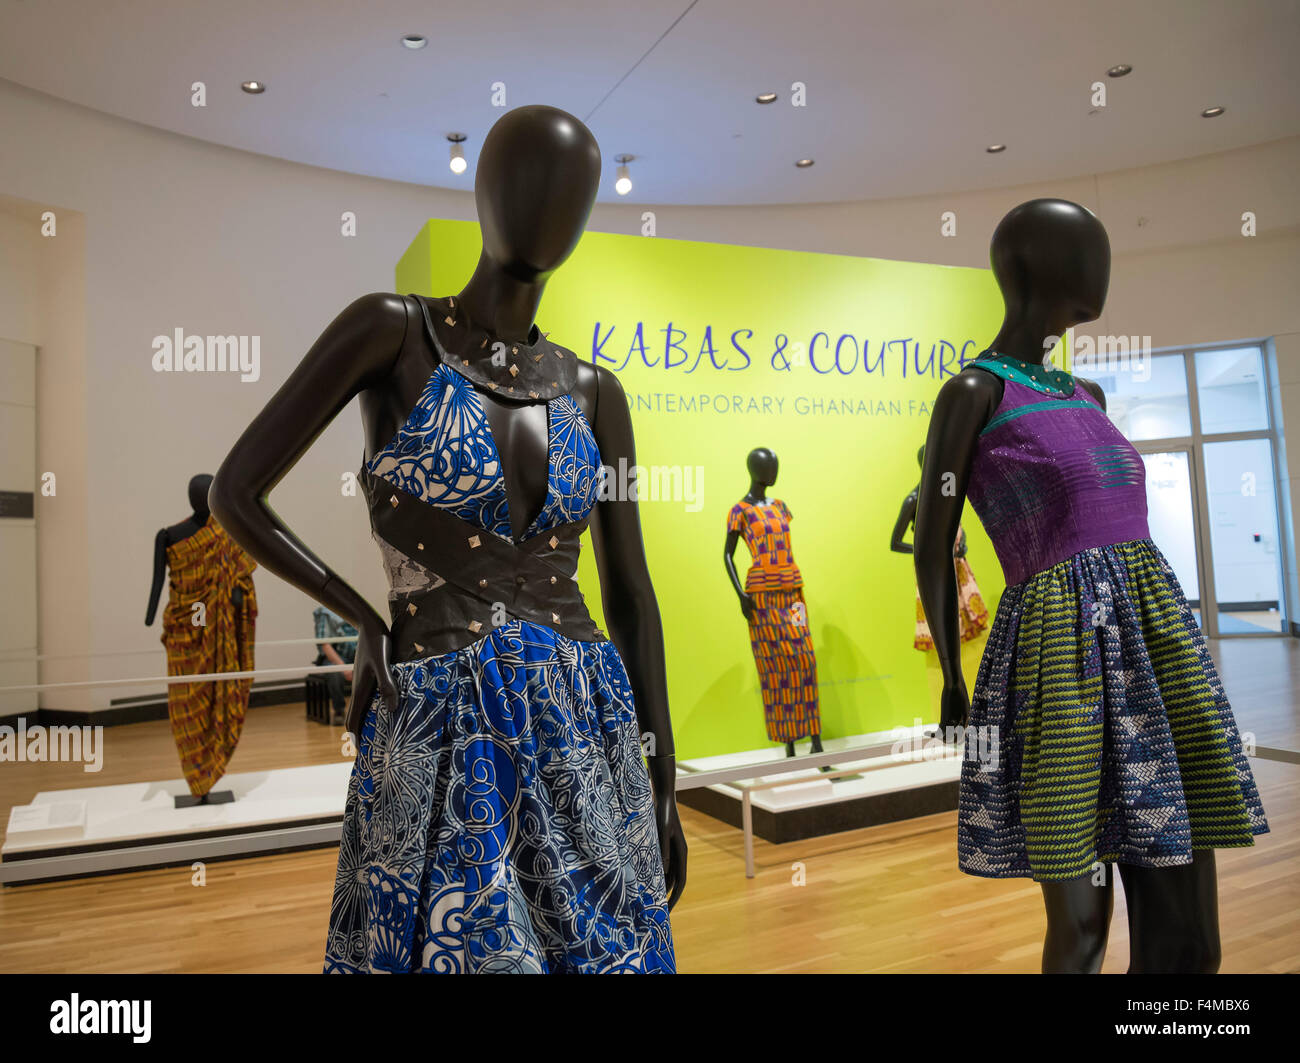 Kabas & Couture, Contemporary Ghanaian Fashion - Stock Image